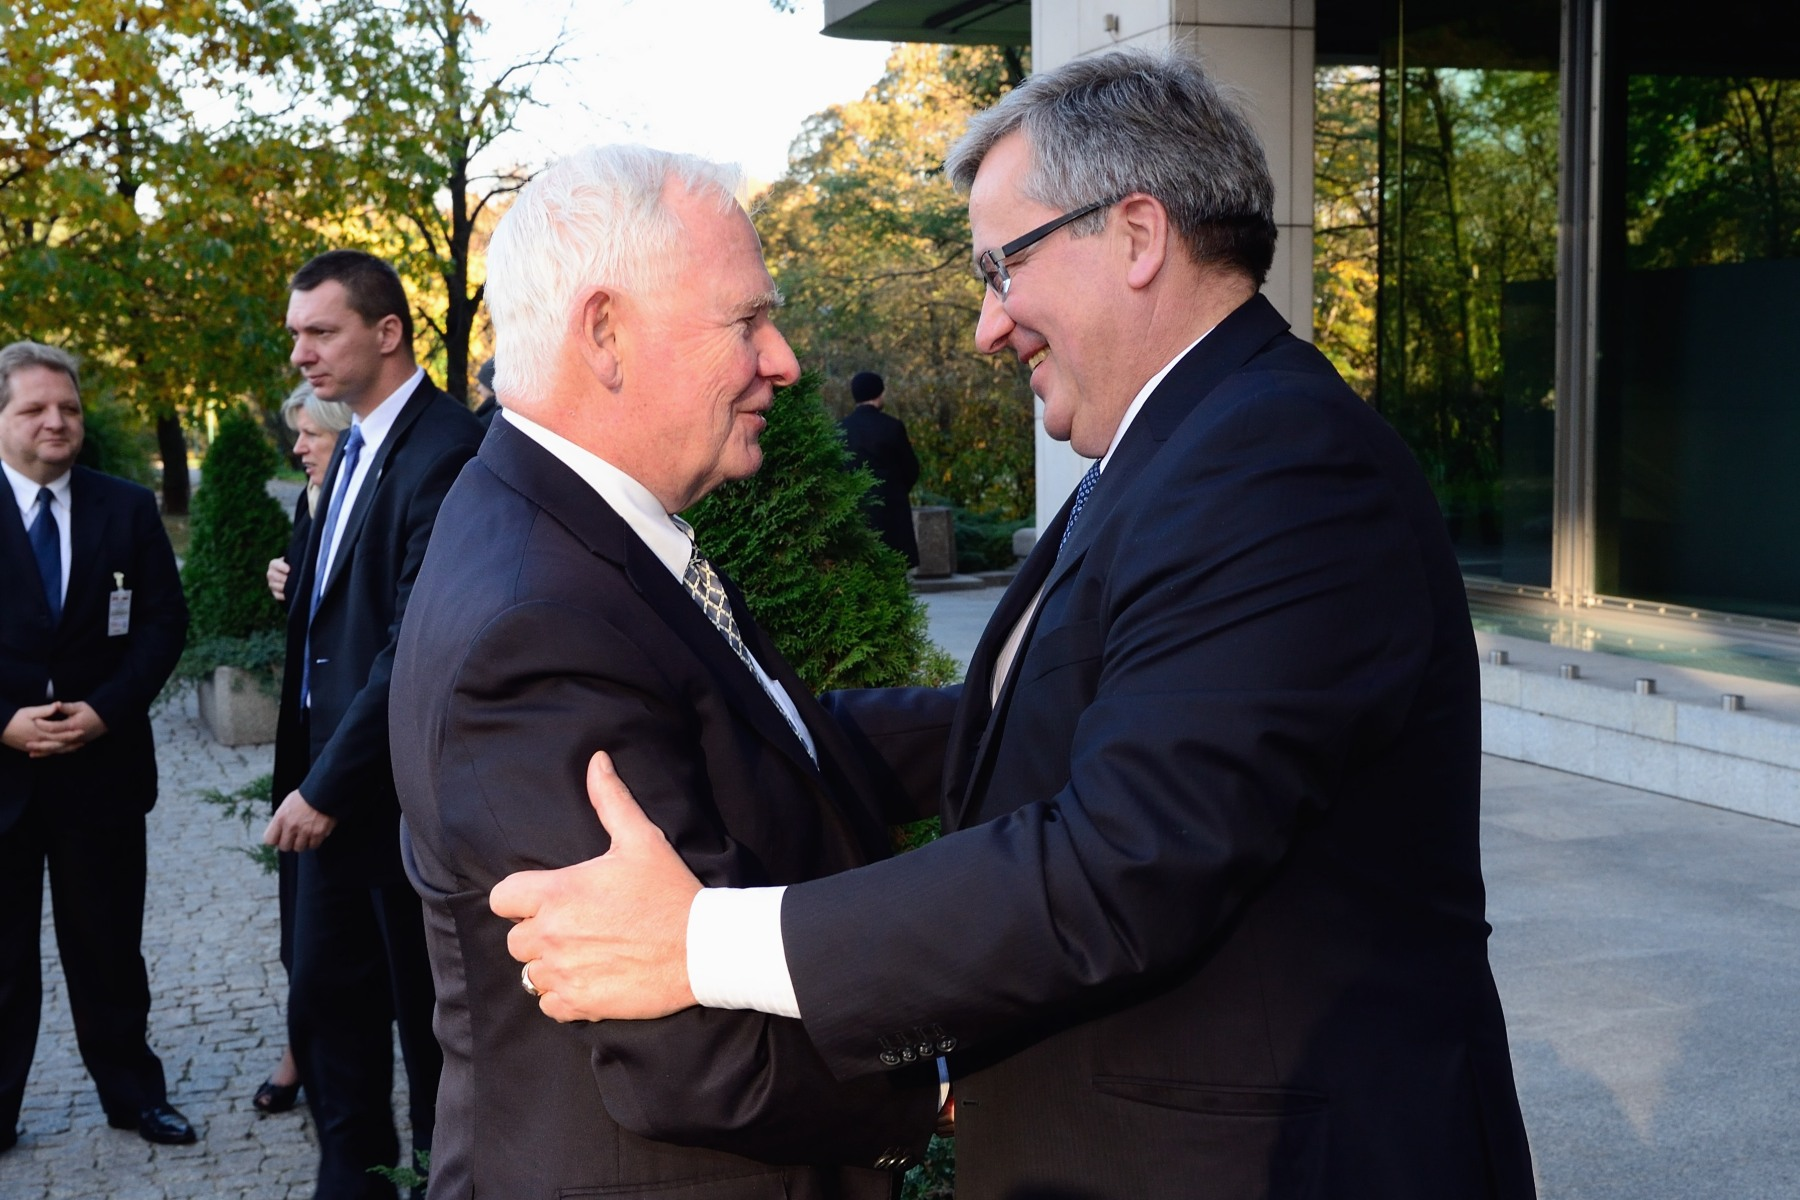 Upon his arrival at the Canada-Poland Panel Discussion at the Warsaw Stock Exchange, His Excellency was greeted by Bronislaw Komorowski, President of Poland.